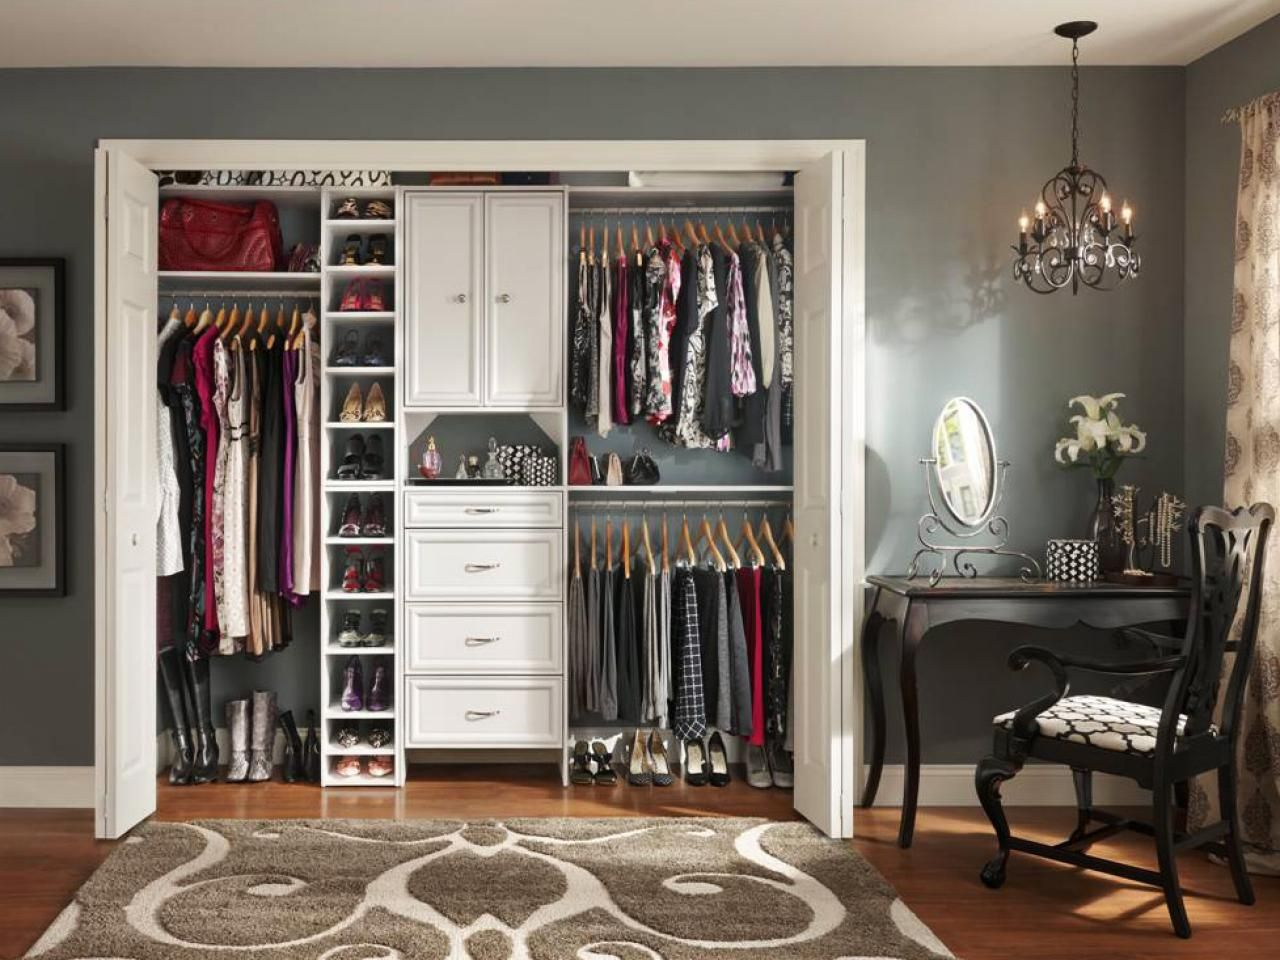 Small Closet Organization Ideas Pictures Options Tips Home Remodeling For Bats Theaters More Hgtv